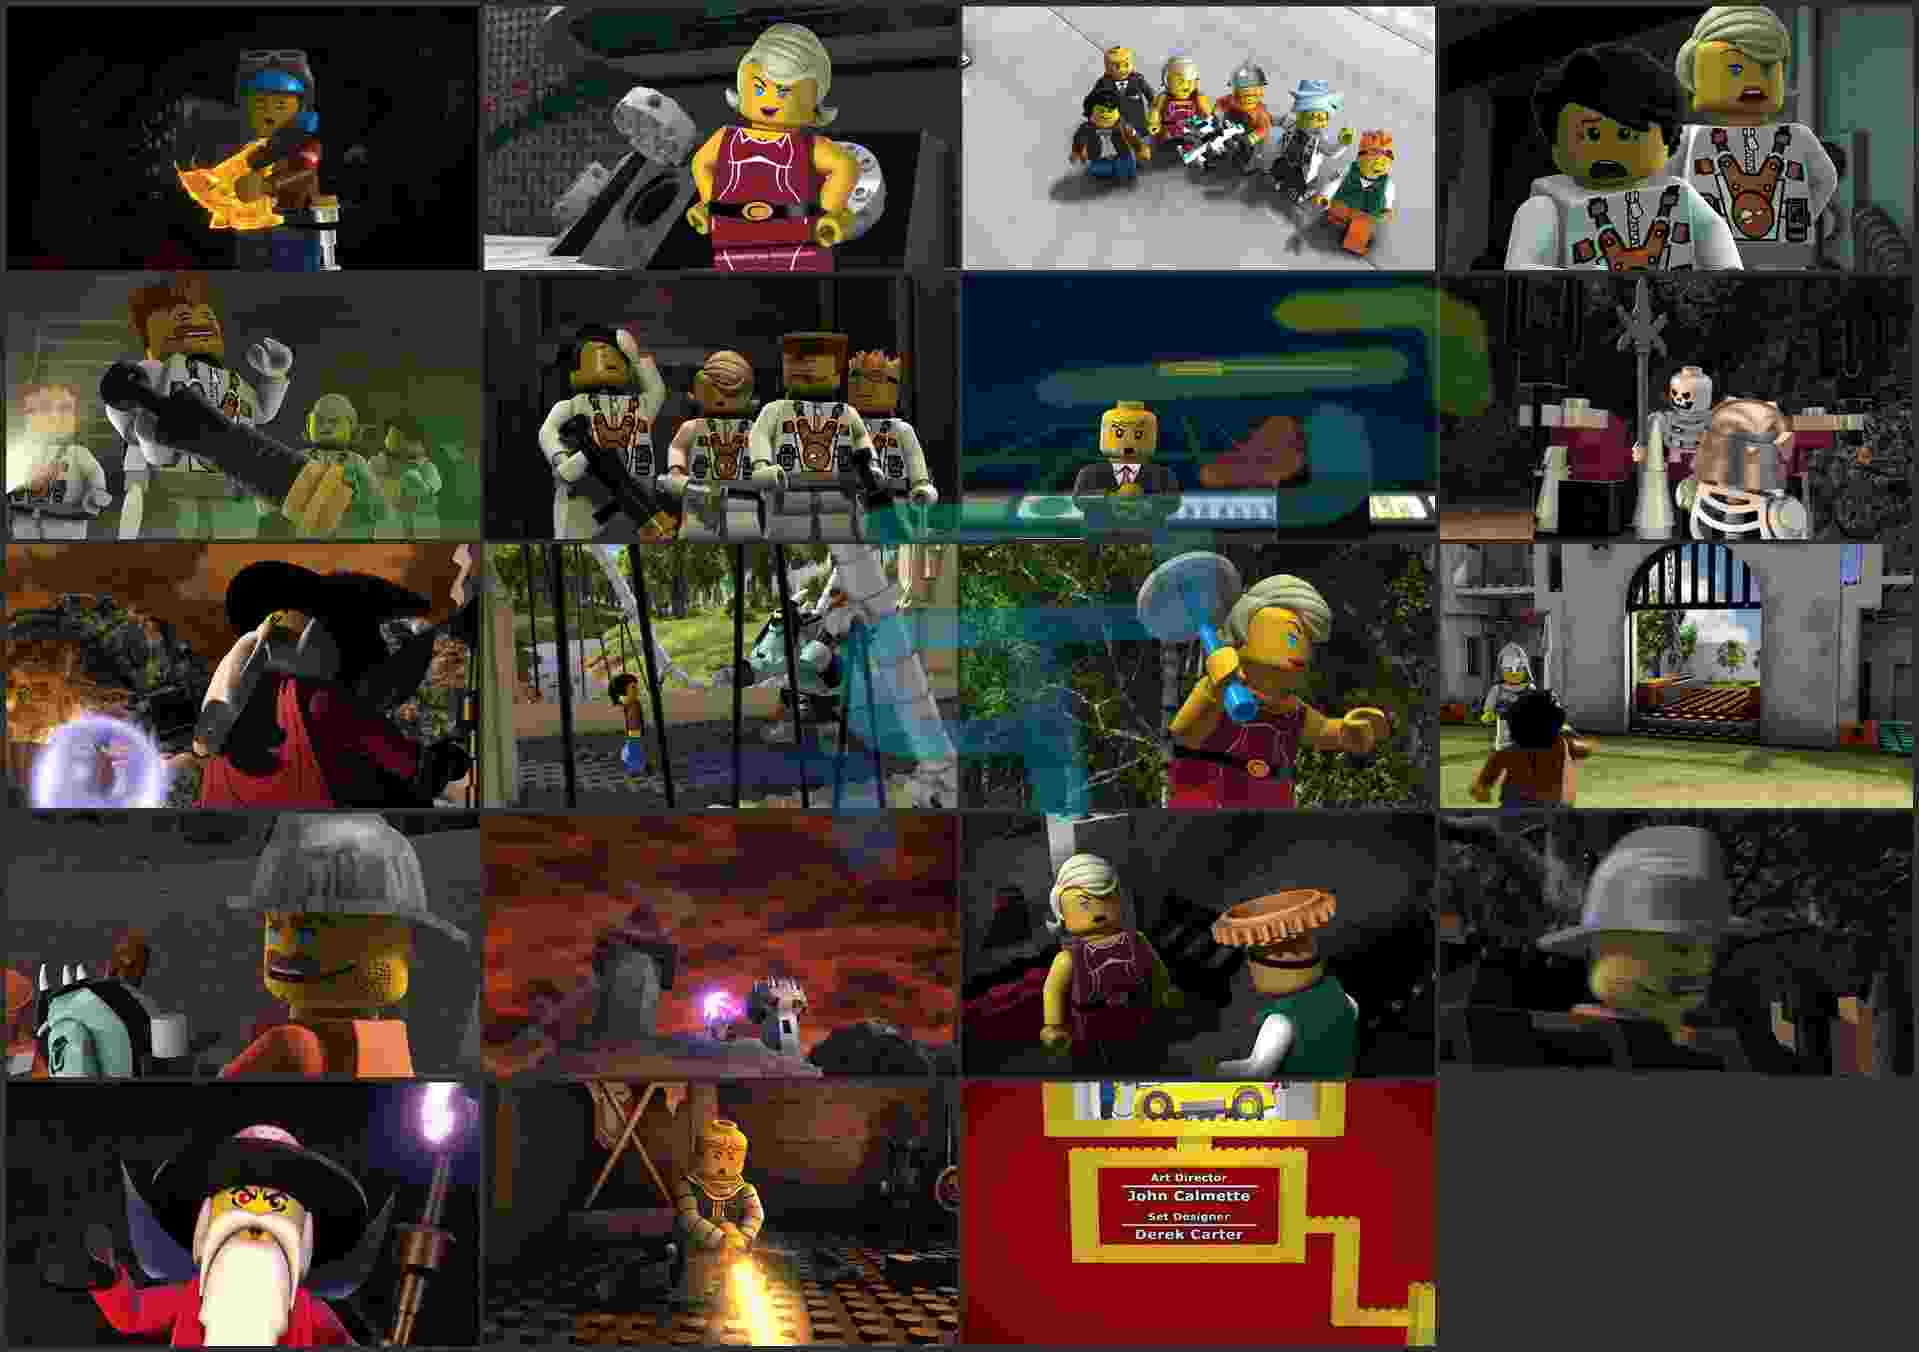 Lego_The_Adventures_Of_Clutch_Powers_2010_1080p_BluRay__www.download.ir.mp4 (Copy)